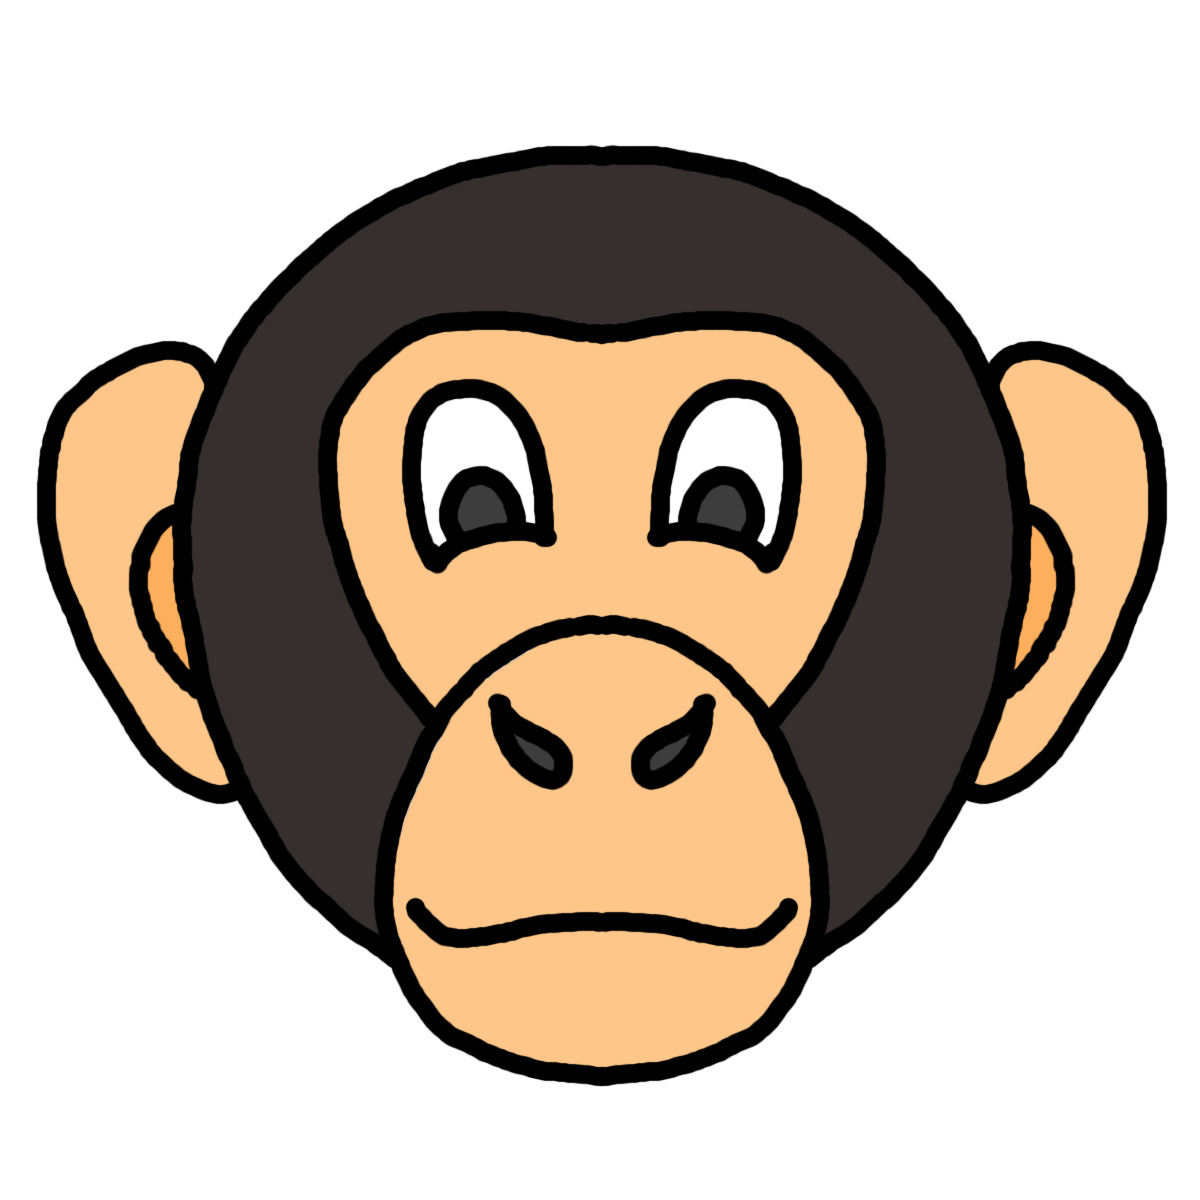 Gorilla face clipart svg library stock Free Cartoon Gorilla Face, Download Free Clip Art, Free Clip Art on ... svg library stock